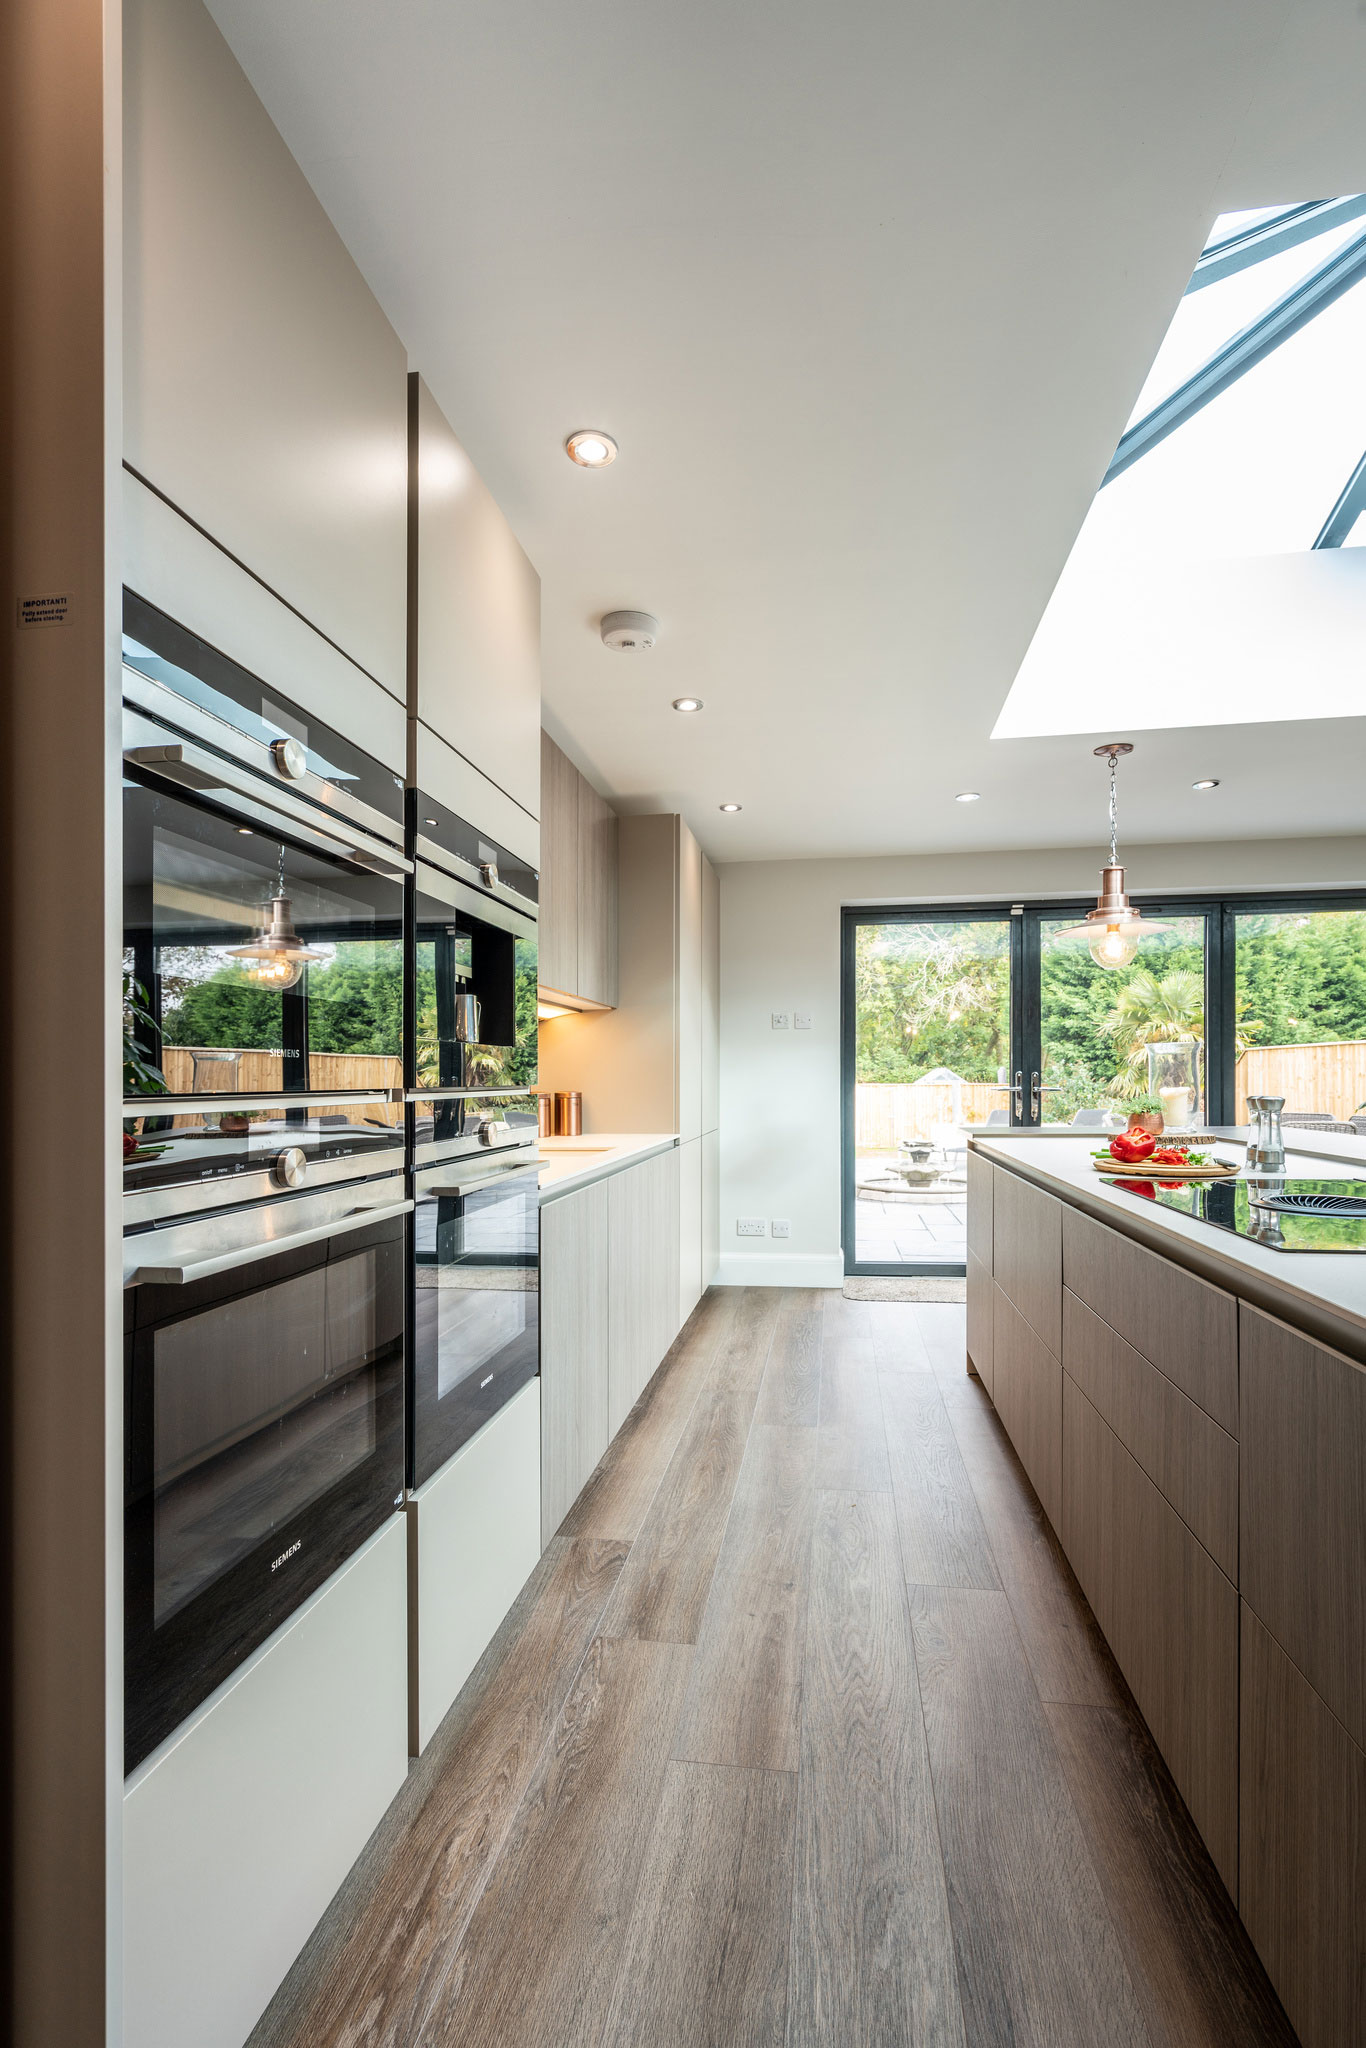 Image of Myers Touch Daniels Kitchen 01102 ZF 2442 14358 1 043 in A space designed for socializing - Cosentino